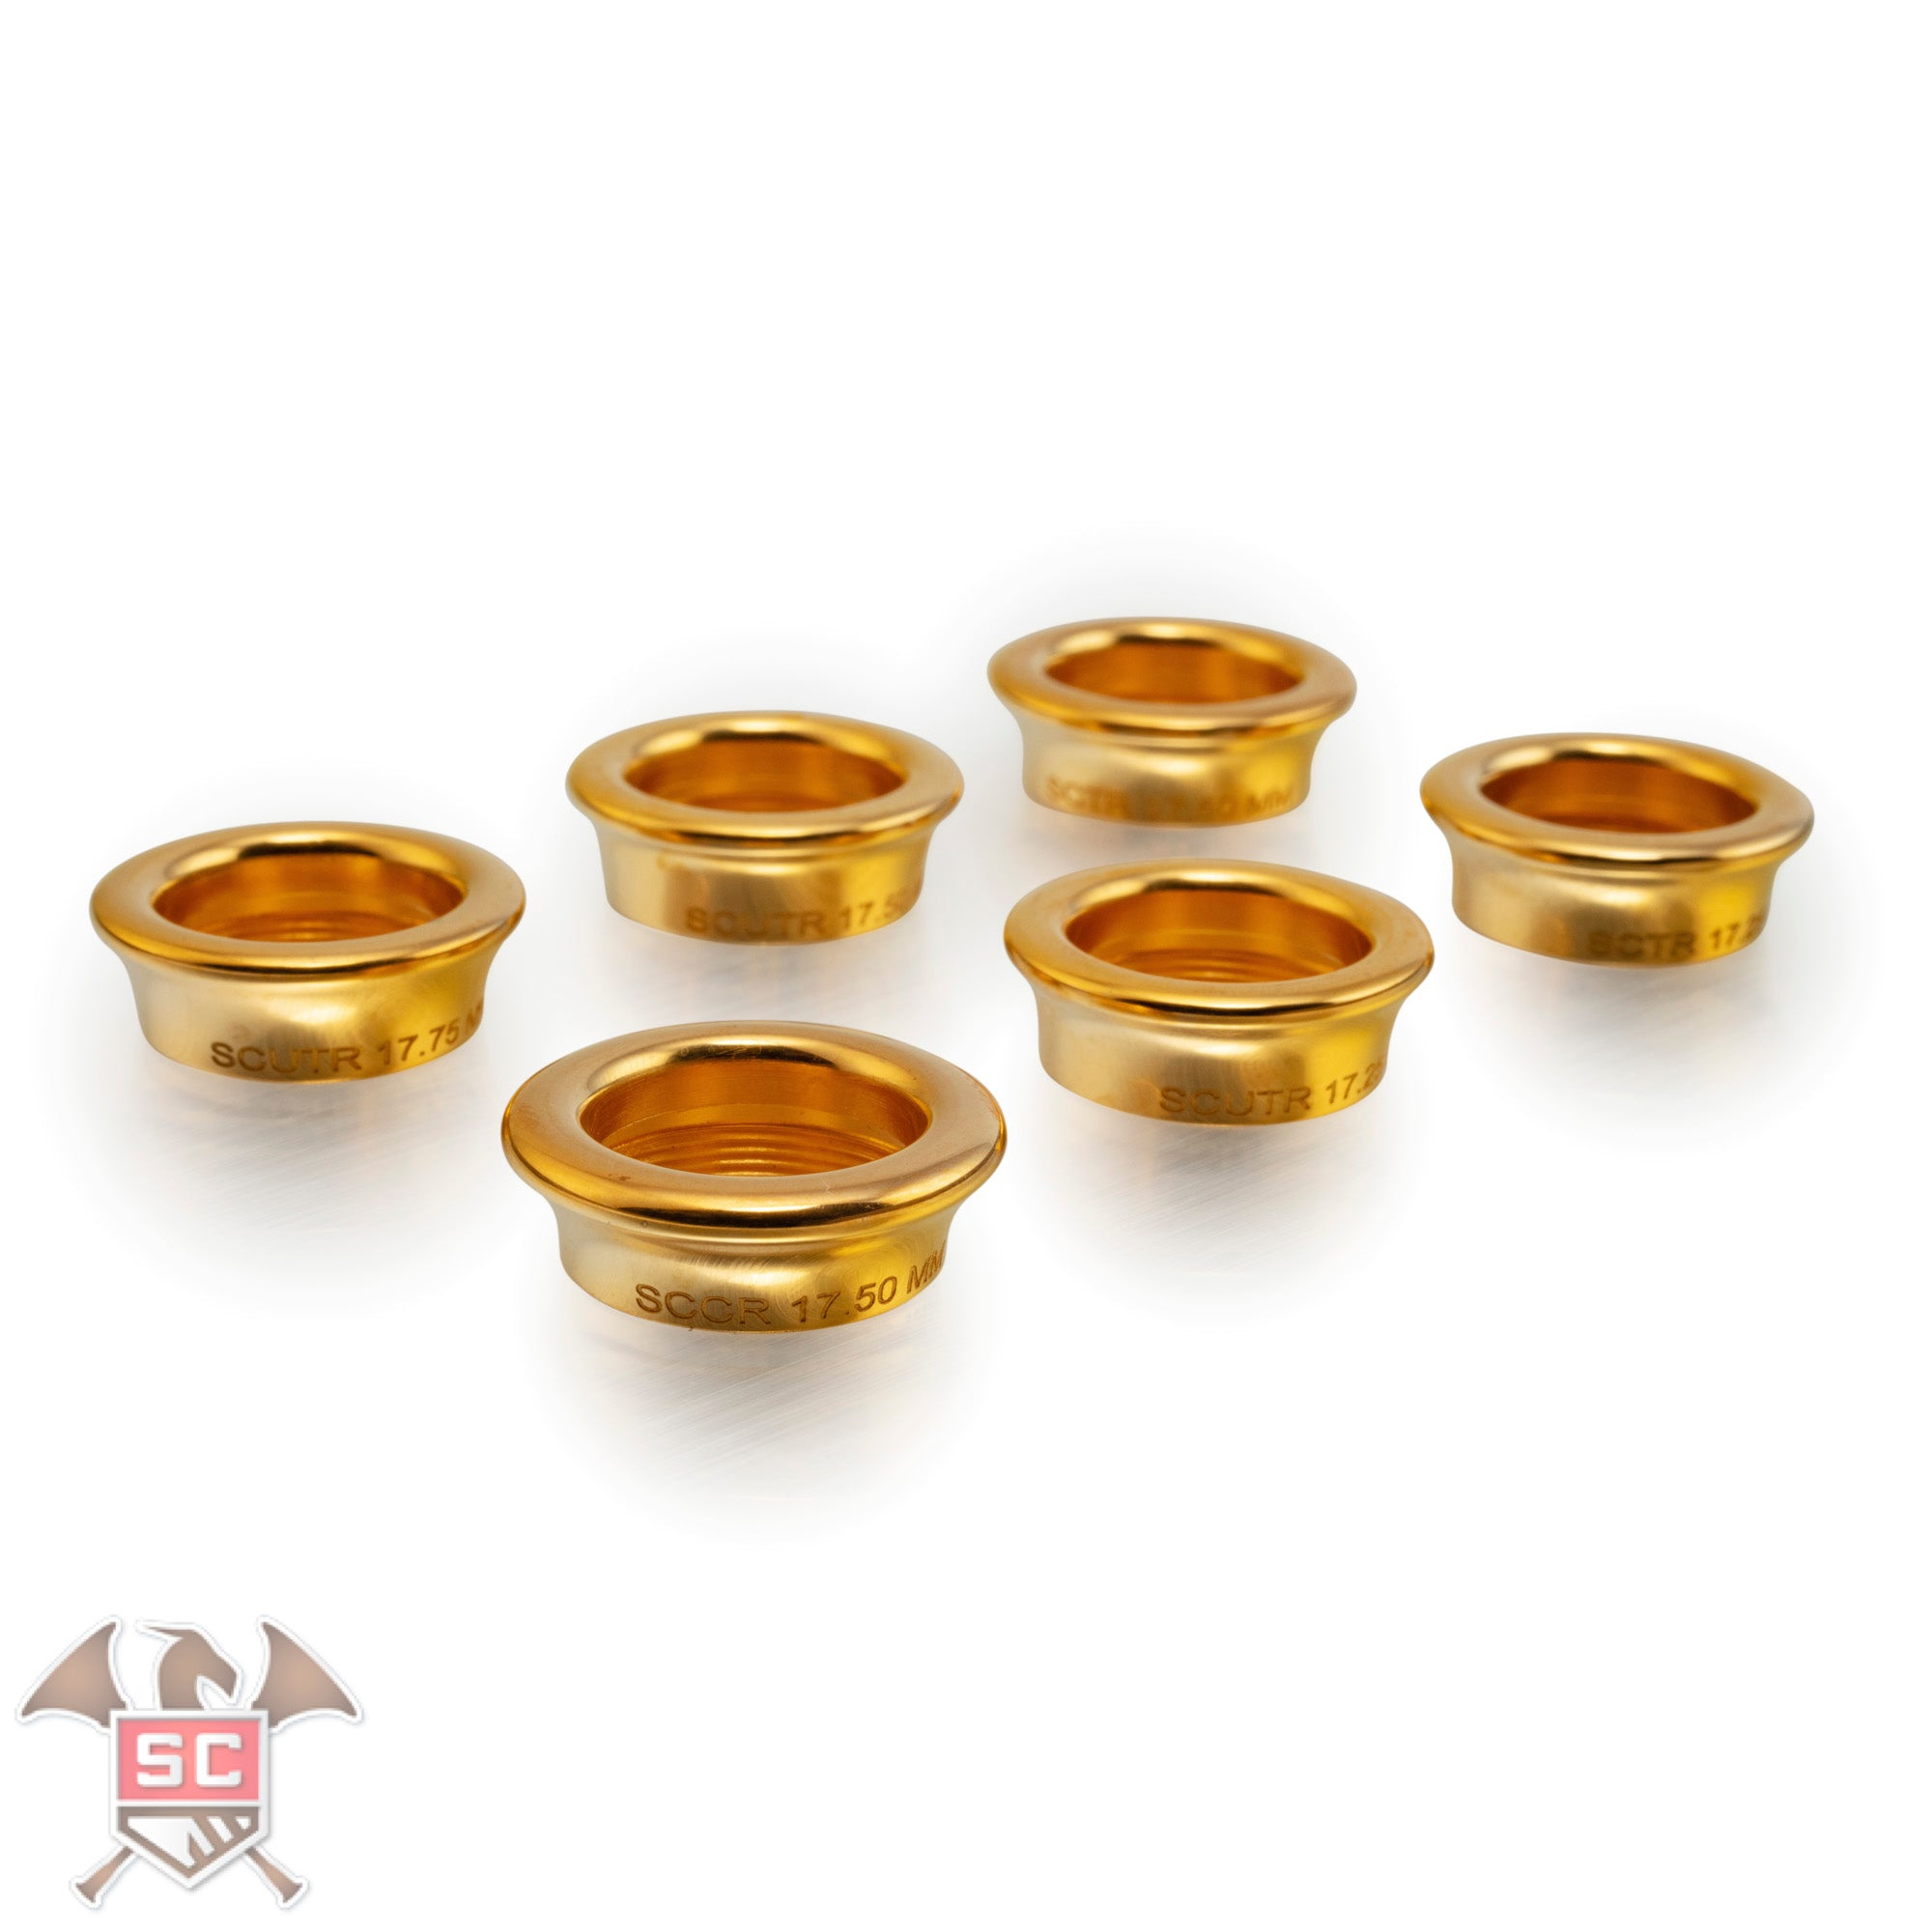 Siegfried's Call Custom French Horn Mouthpiece Rims. SCCR,SCTR,SCUTR